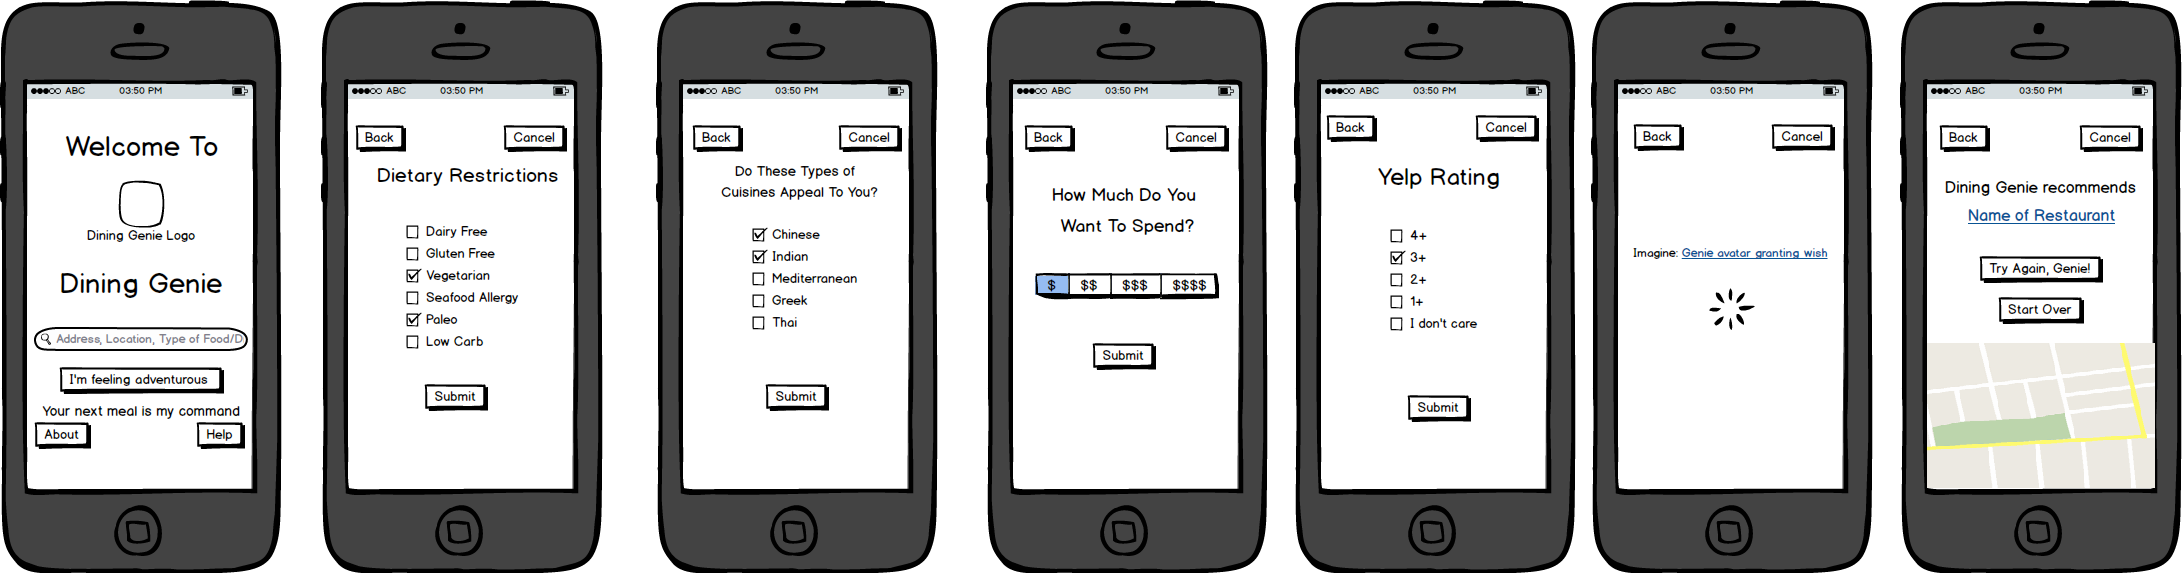 Lo-Fi mockups of Dining Genie made in Balsamiq